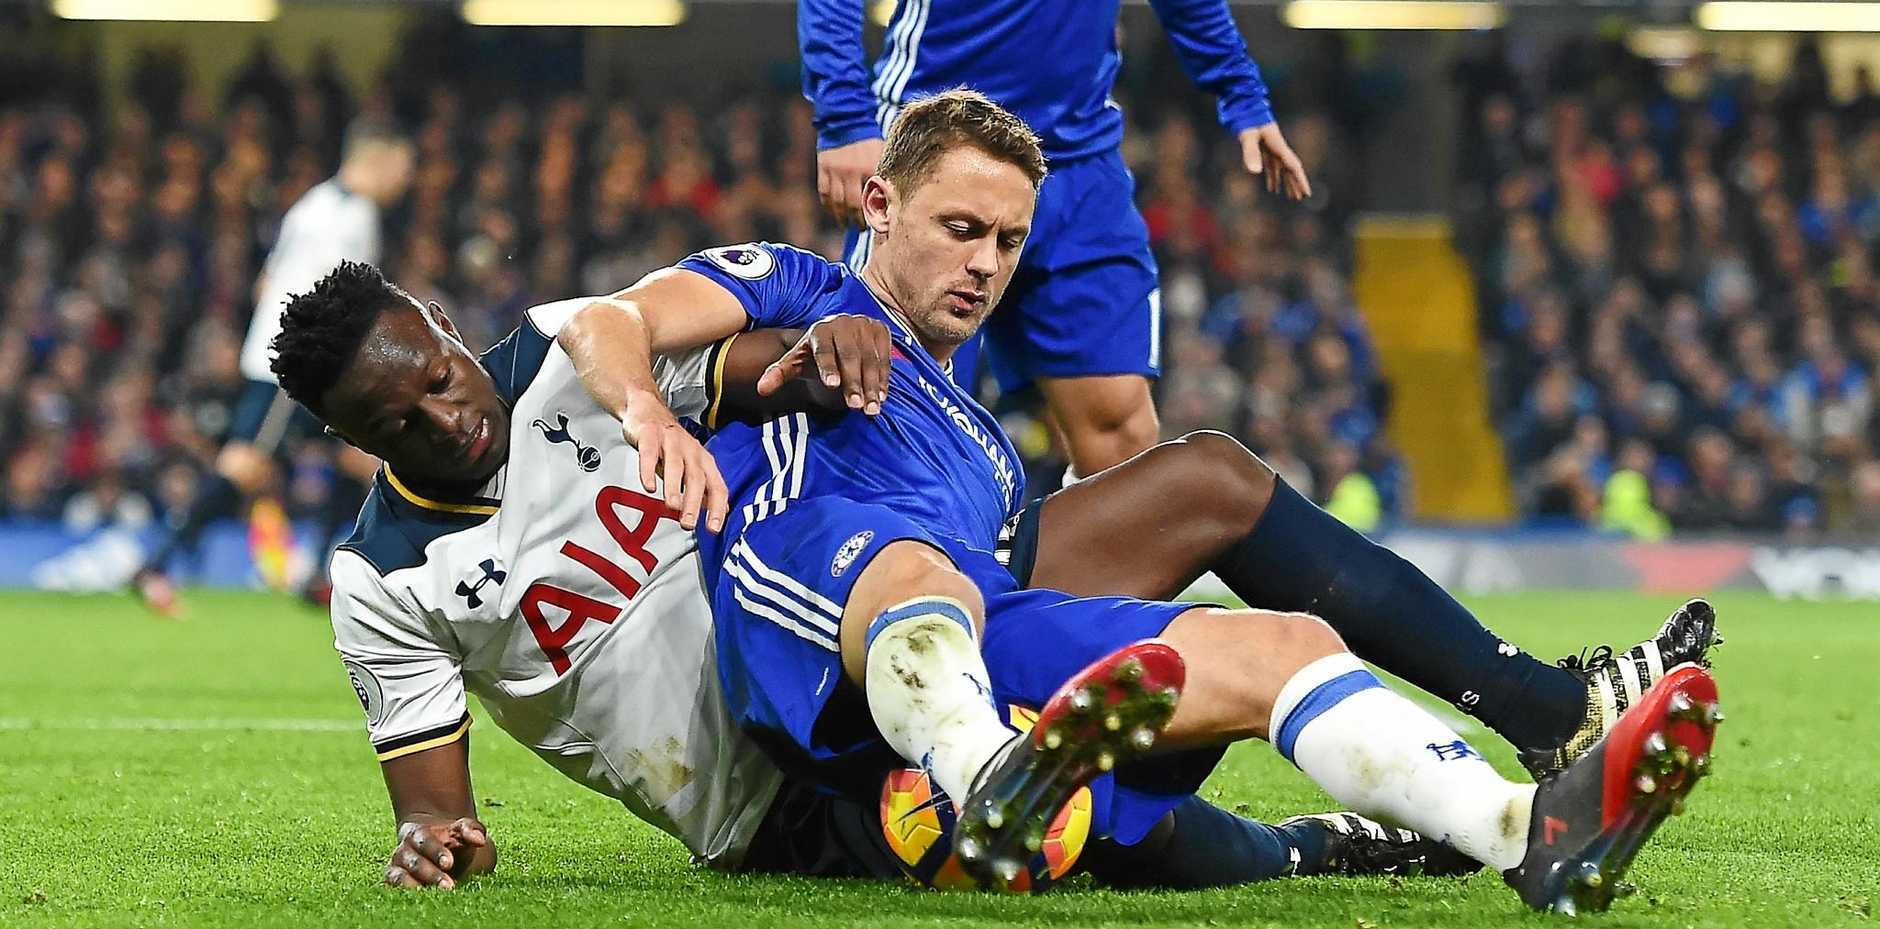 Chelsea's Nemanja Matic and Tottenham's Victor Wanyama fight for the ball.